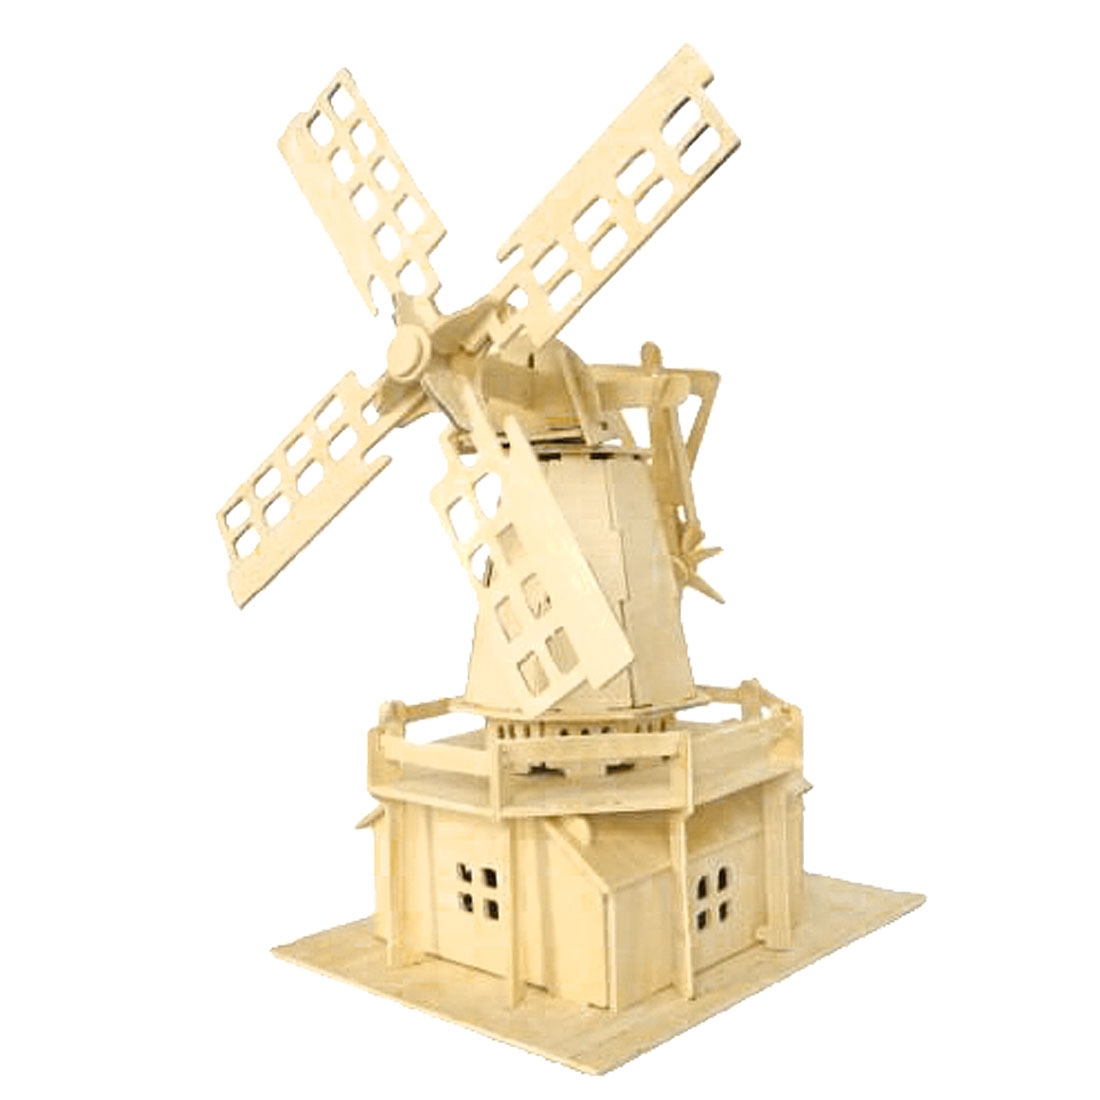 Puzzled 3D Wooden Dutch Windmill Model Woodcraft Construction Kit